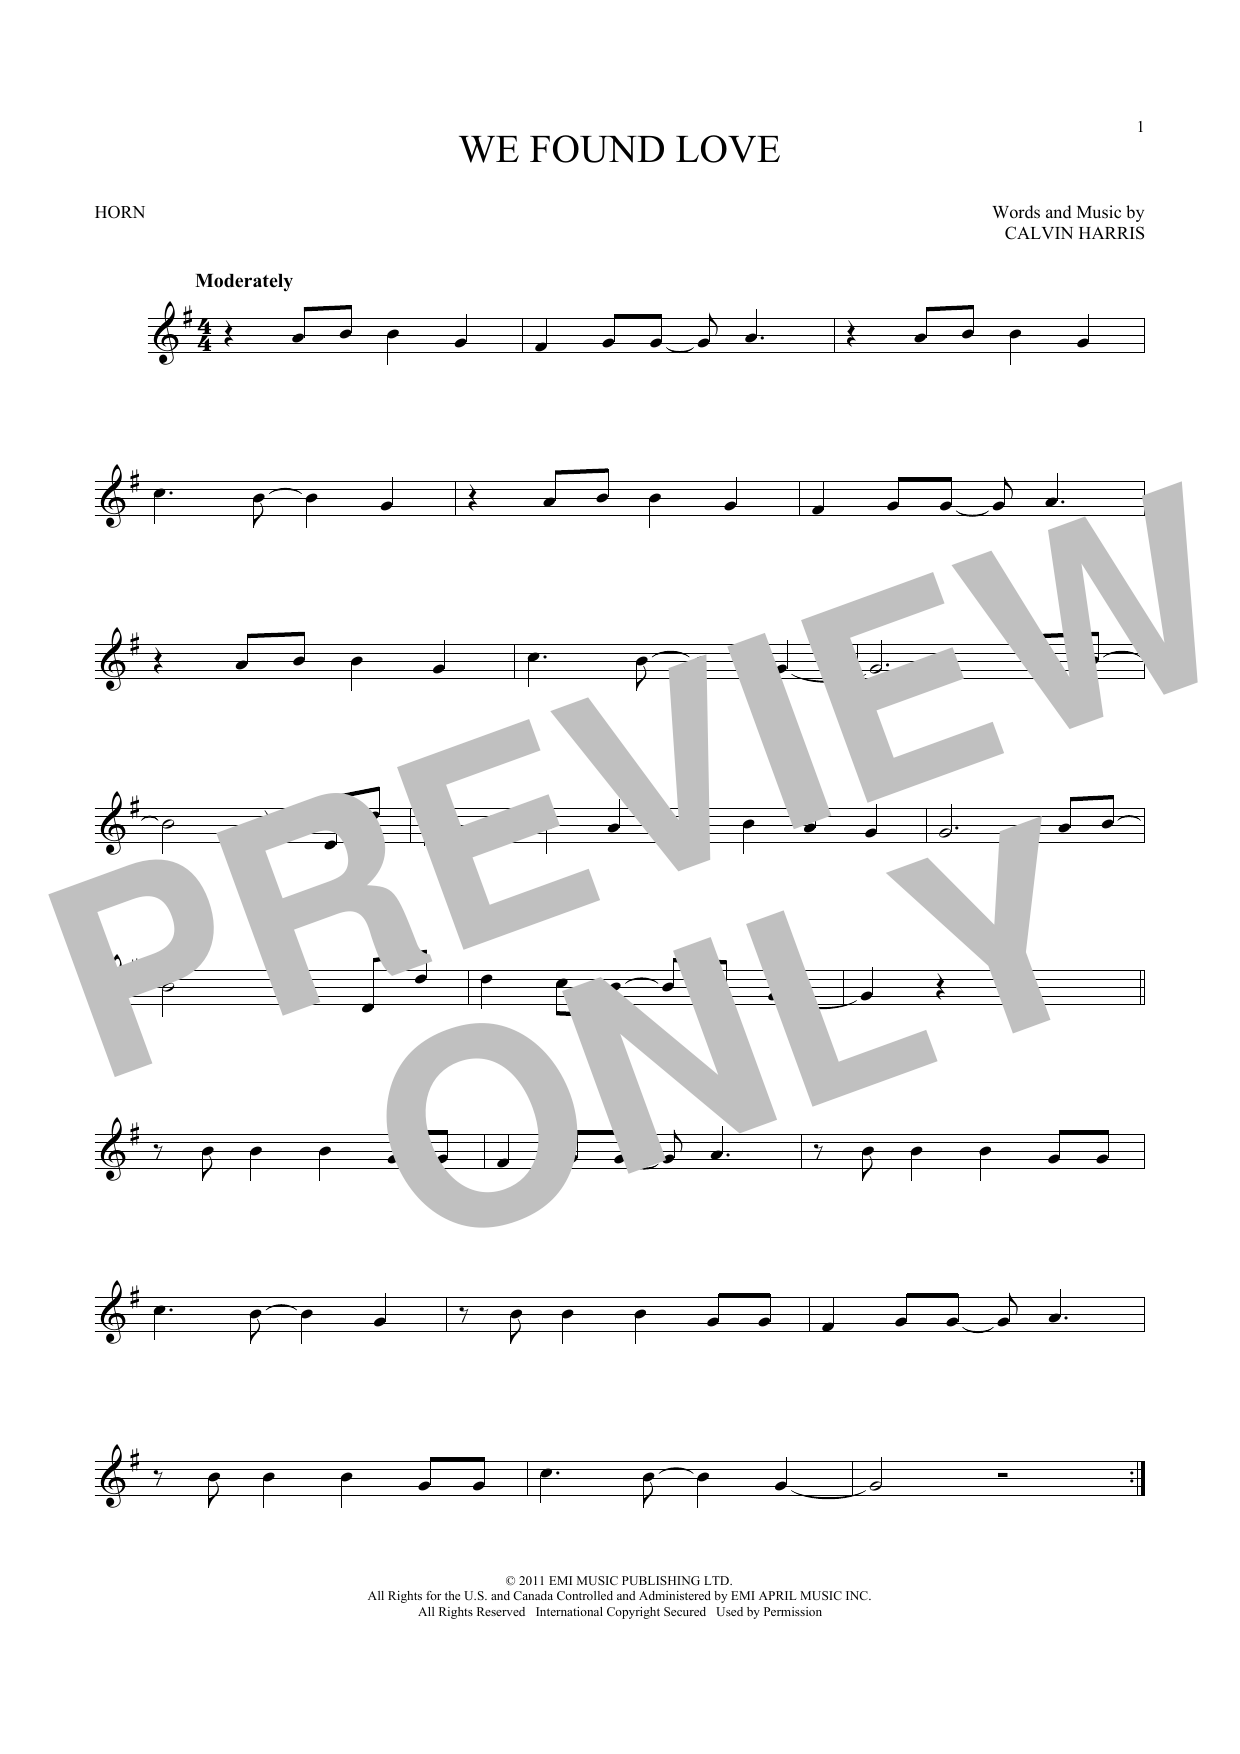 We Found Love (feat. Calvin Harris) (French Horn Solo)